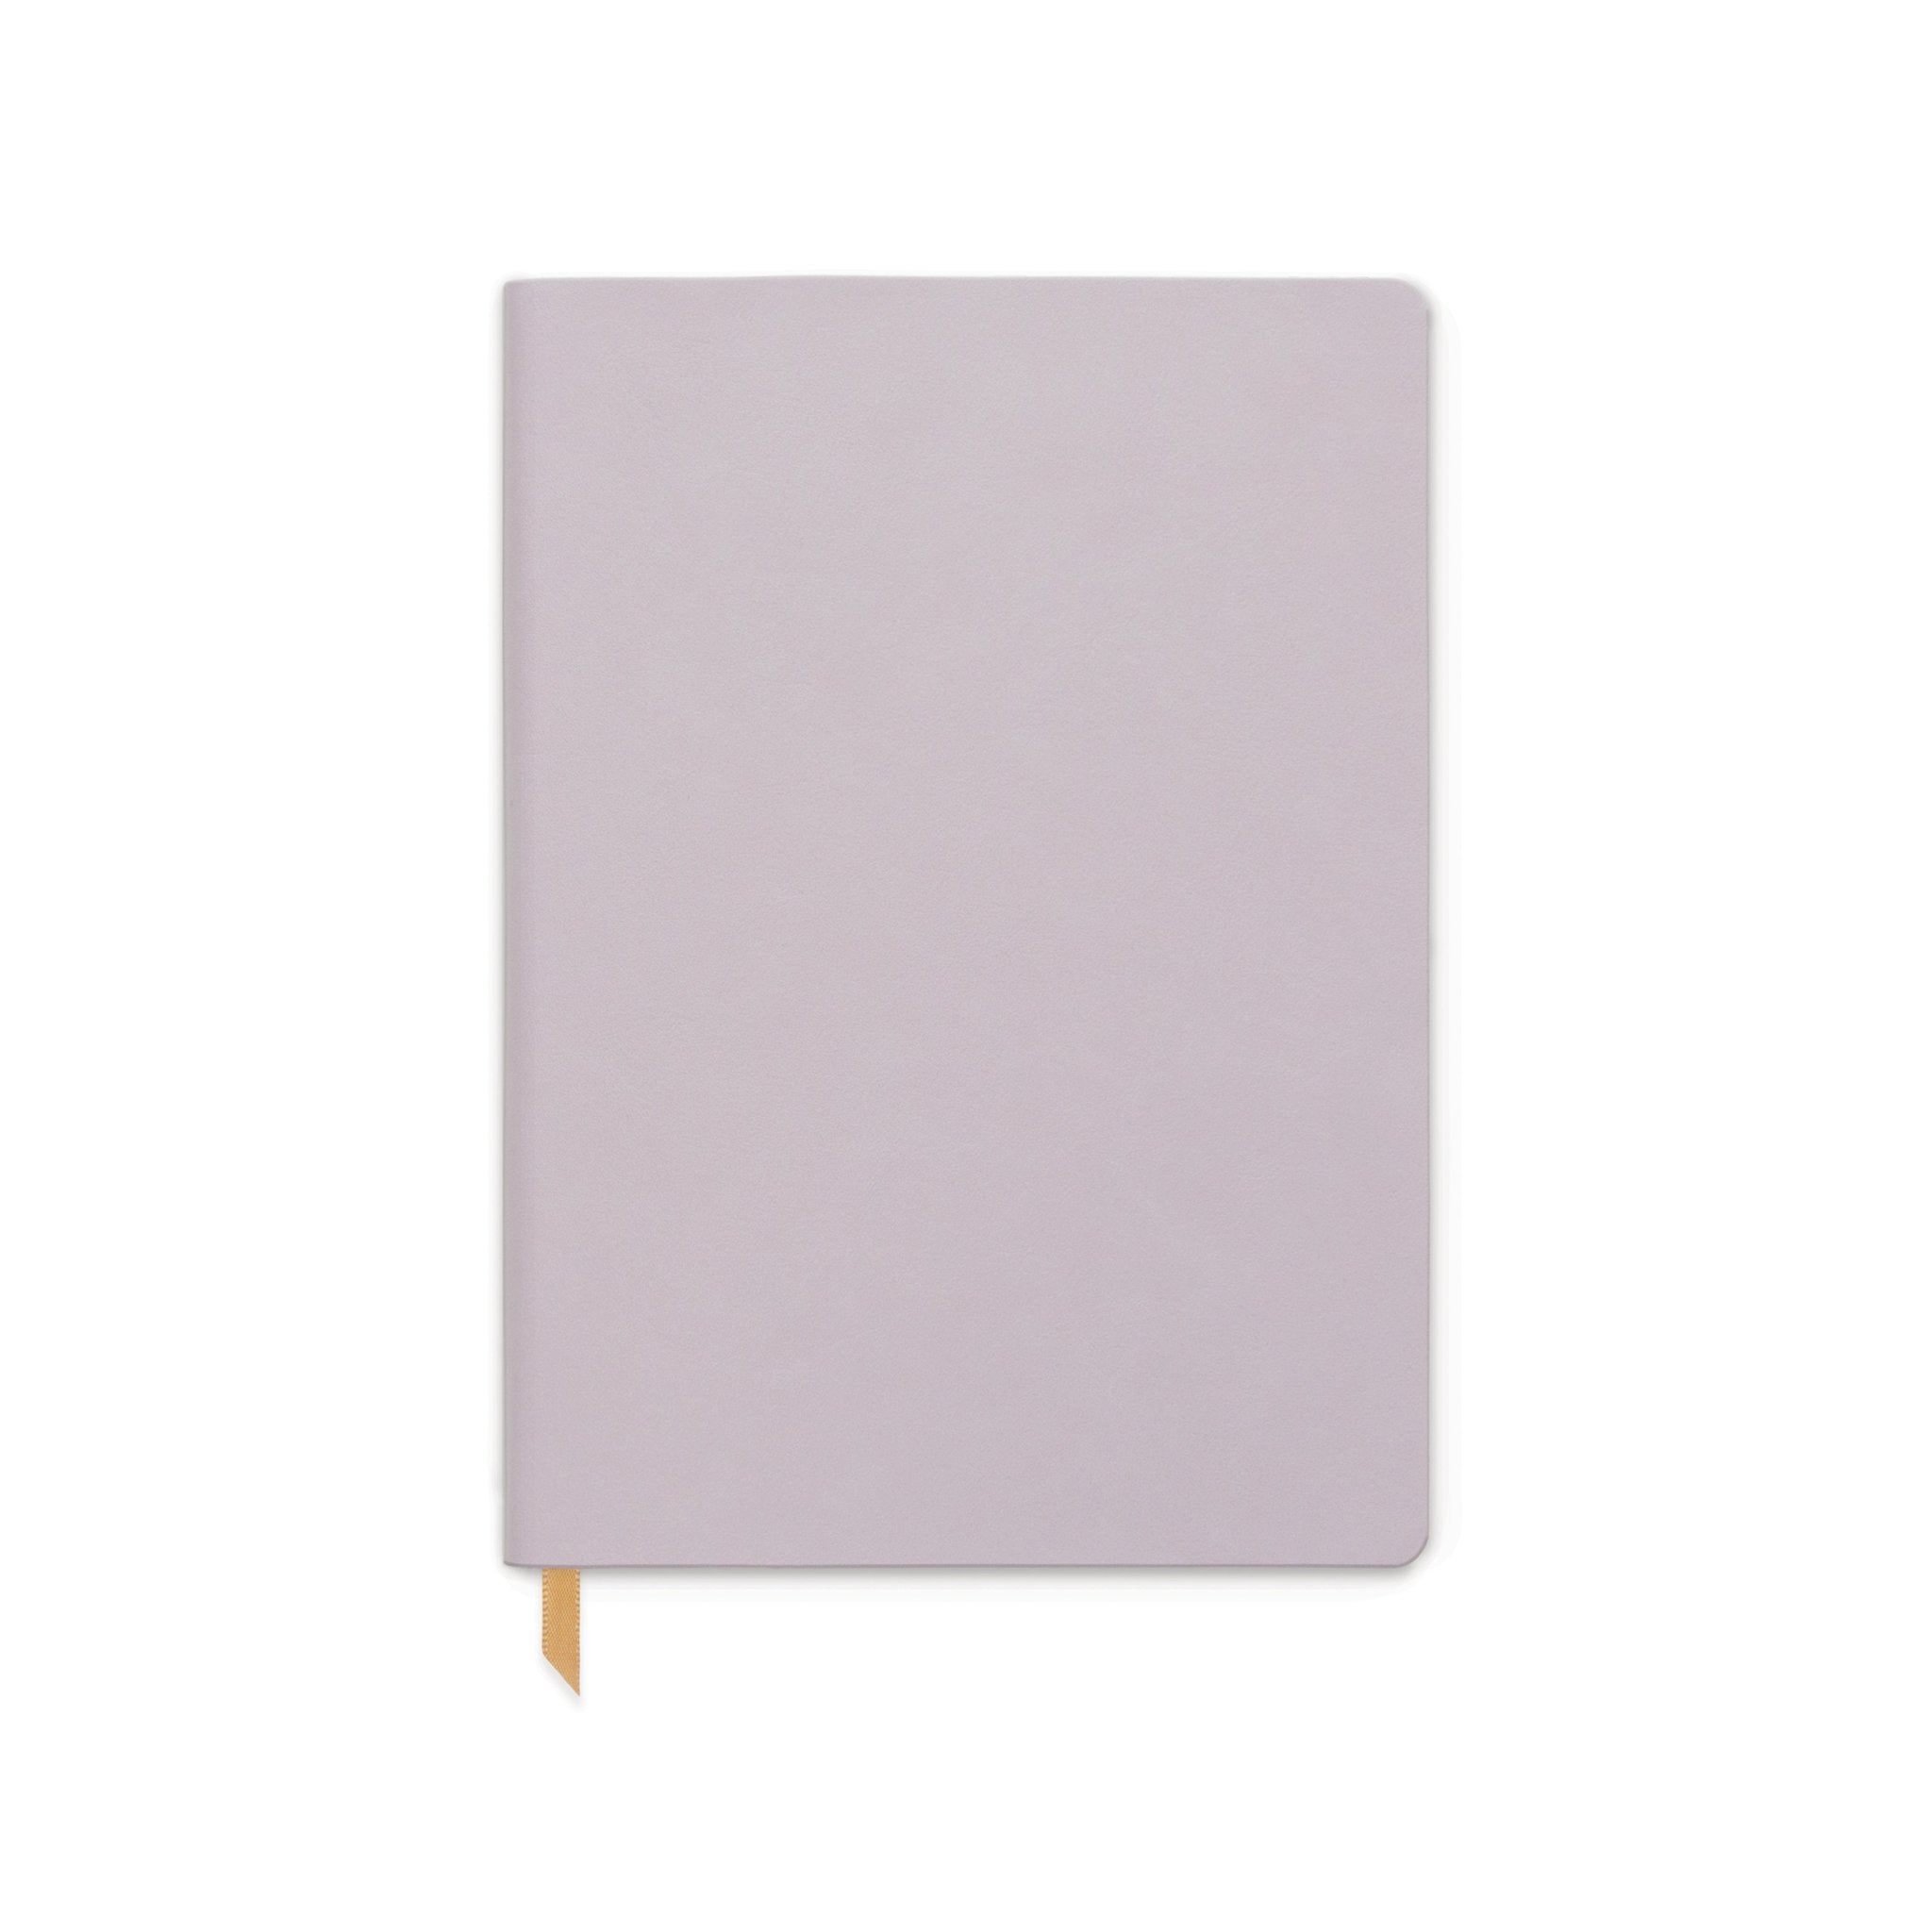 Planner sin fecha Dusty Lilac - Vegan Leather Flex Cover